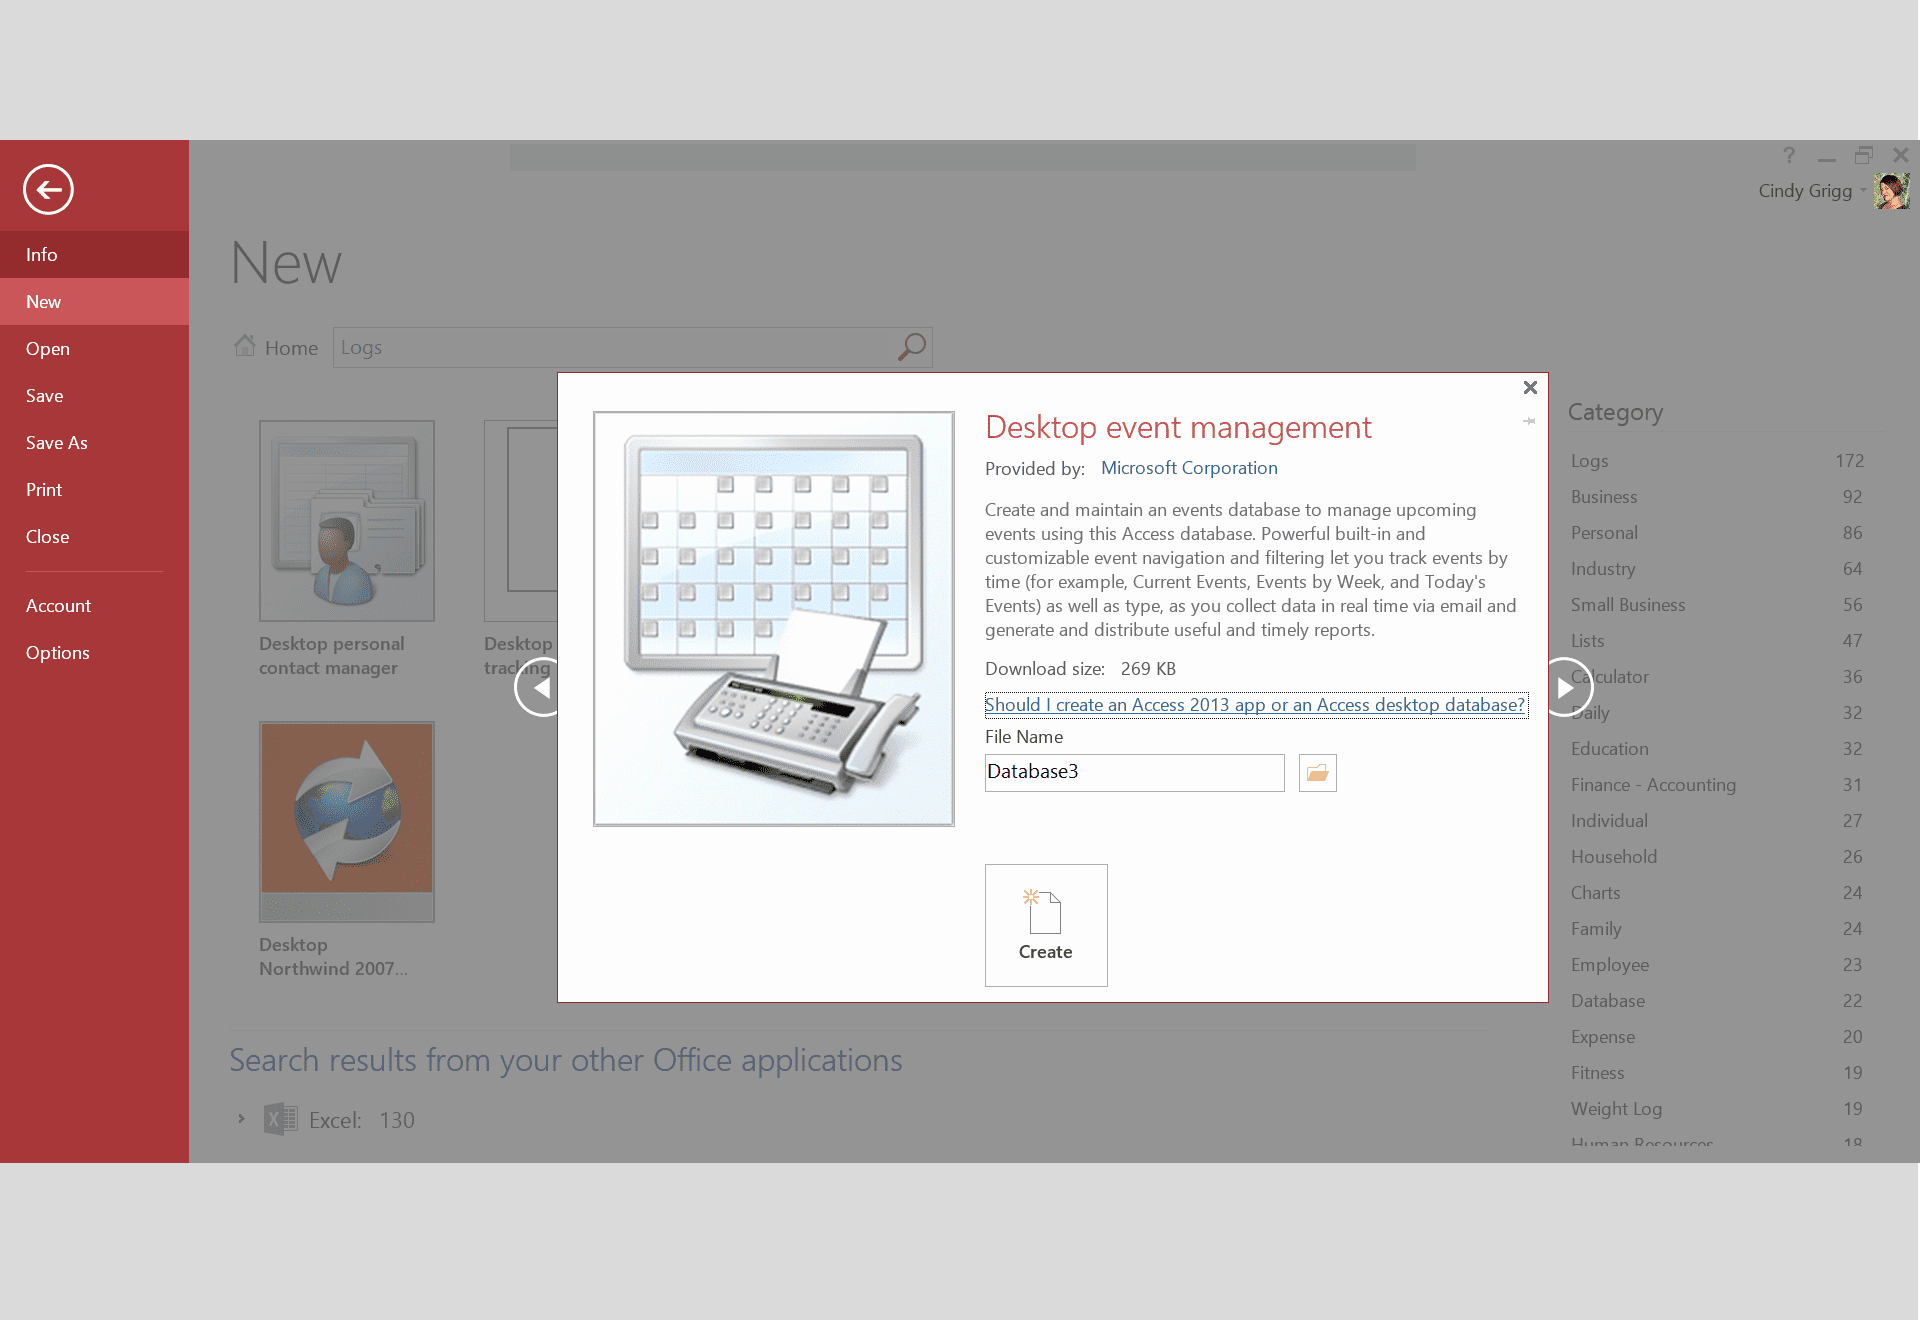 Free Ms Access Templates Luxury Make Microsoft Access Simpler with Free Templates